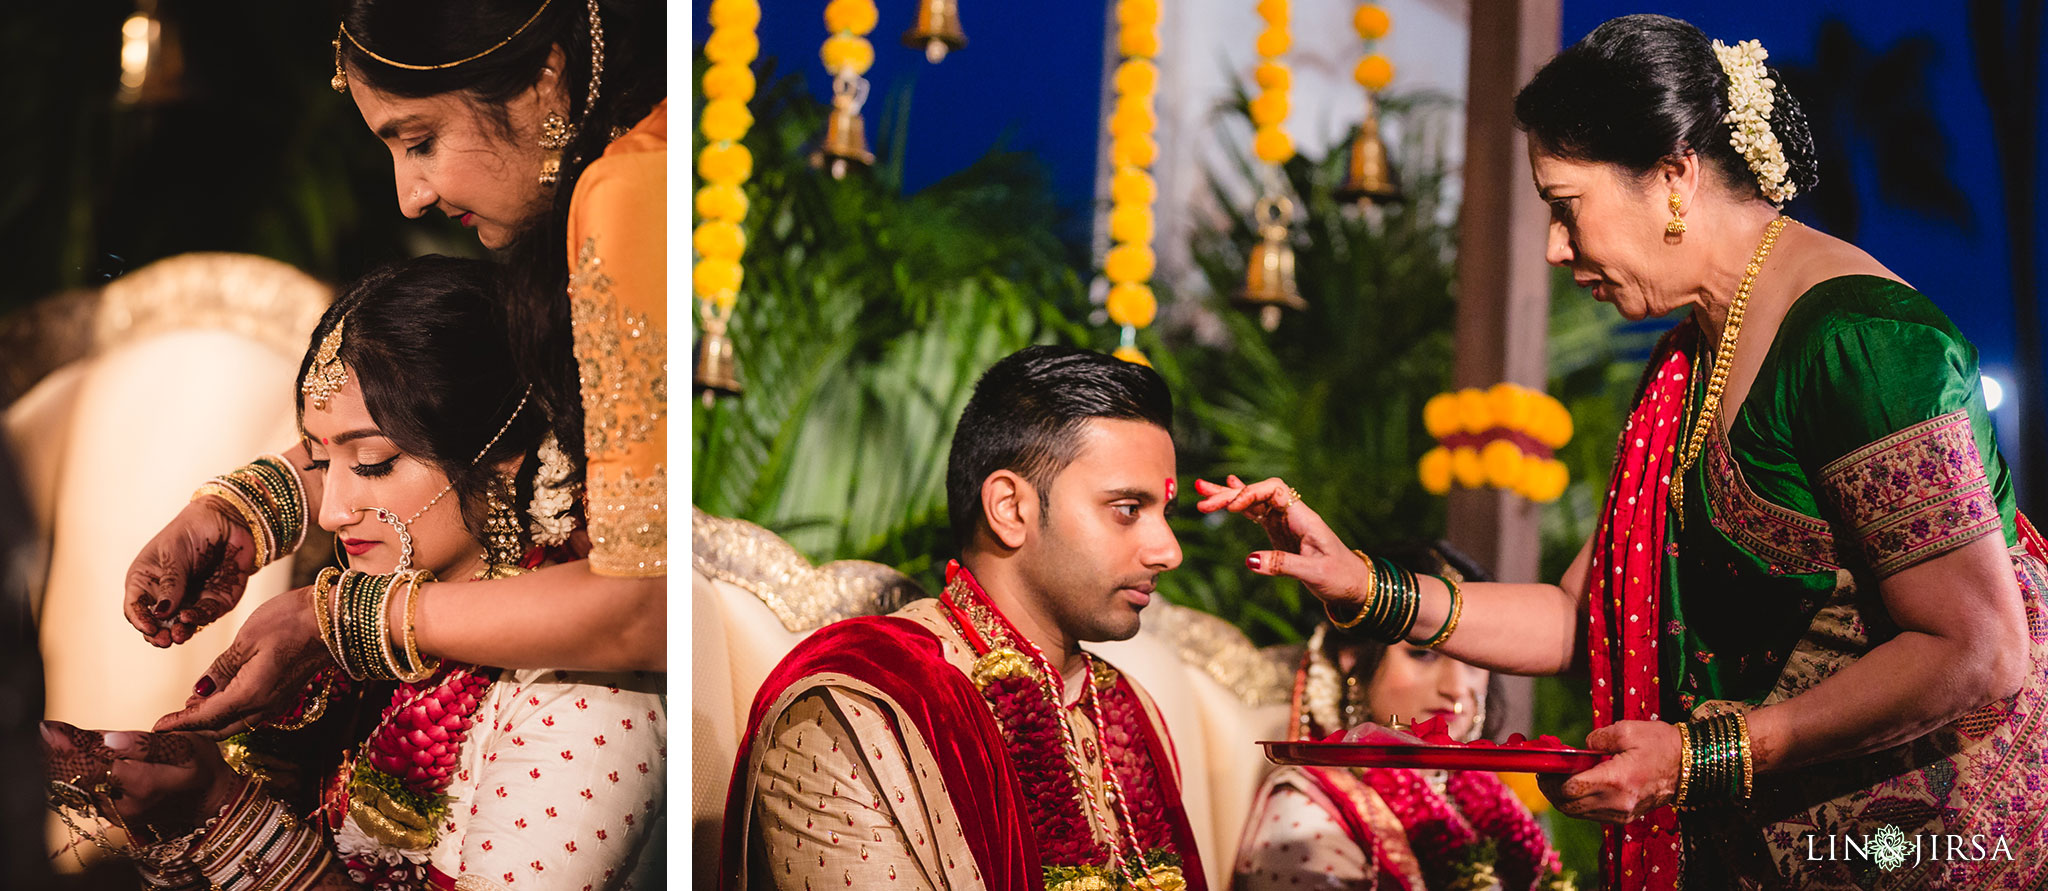 41 hotel irvine indian wedding ceremony photography